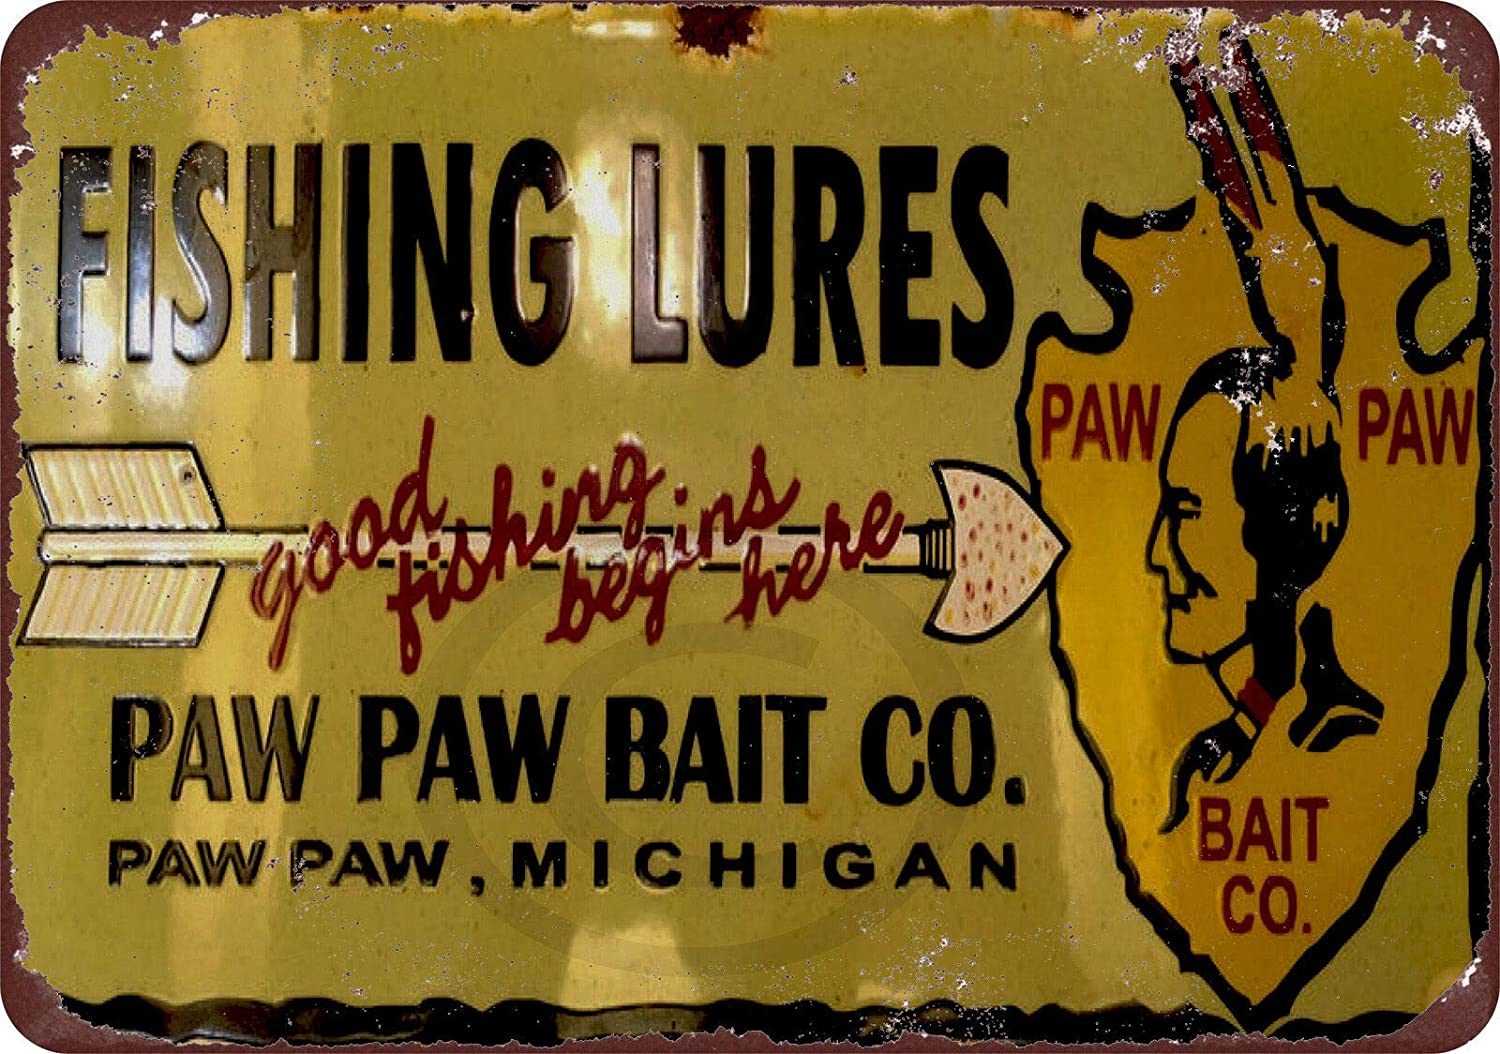 HomDeo Novelty Retro Barber Shop Decor Art Metal Signs Vintage Farm Paw Paw Bait Co. Fishing Lures Tin Sign 8 x 12 Inches Basement Wine Cellar